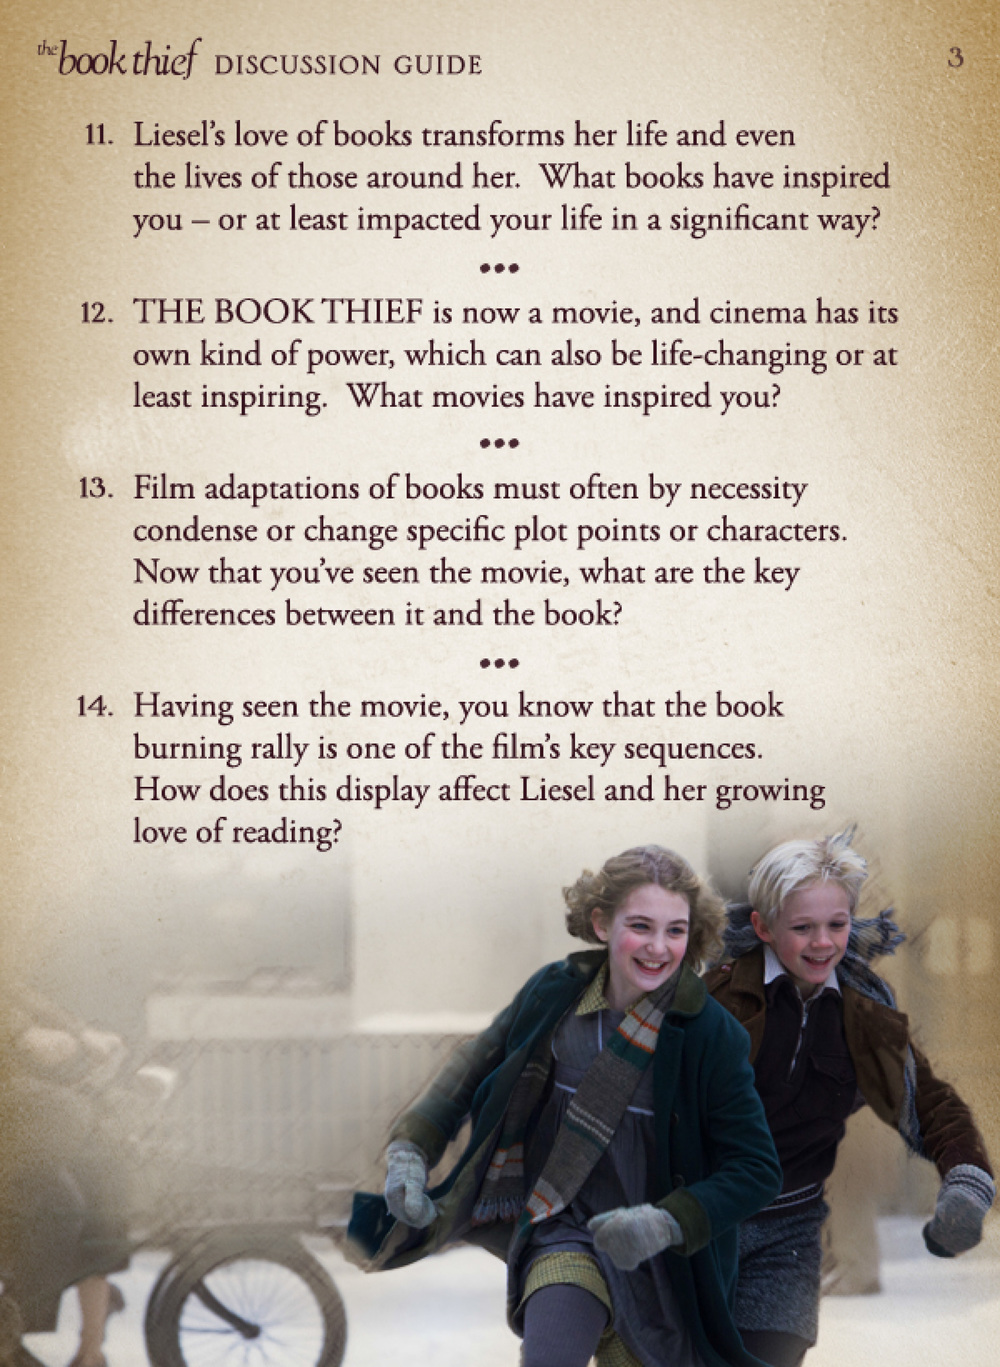 Book Thief Discussion Guide v4.jpg